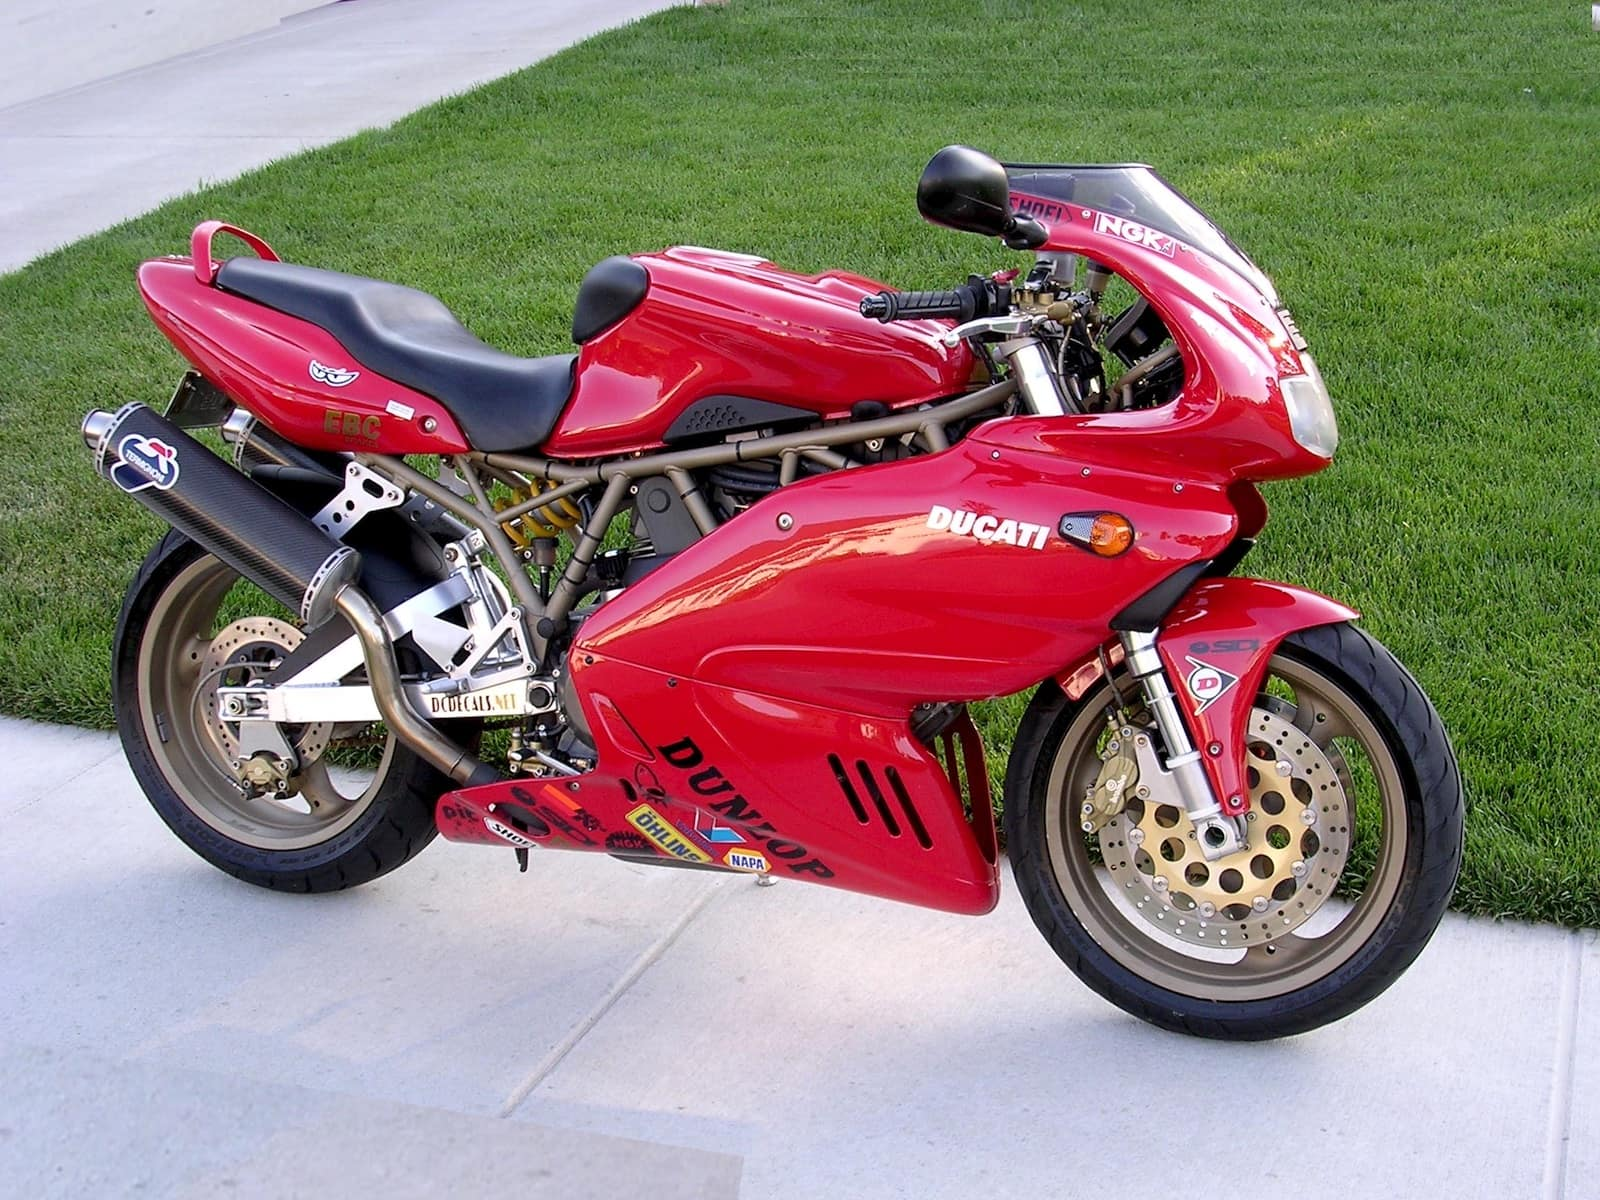 Red second-generation fuel-injected Ducati Supersport